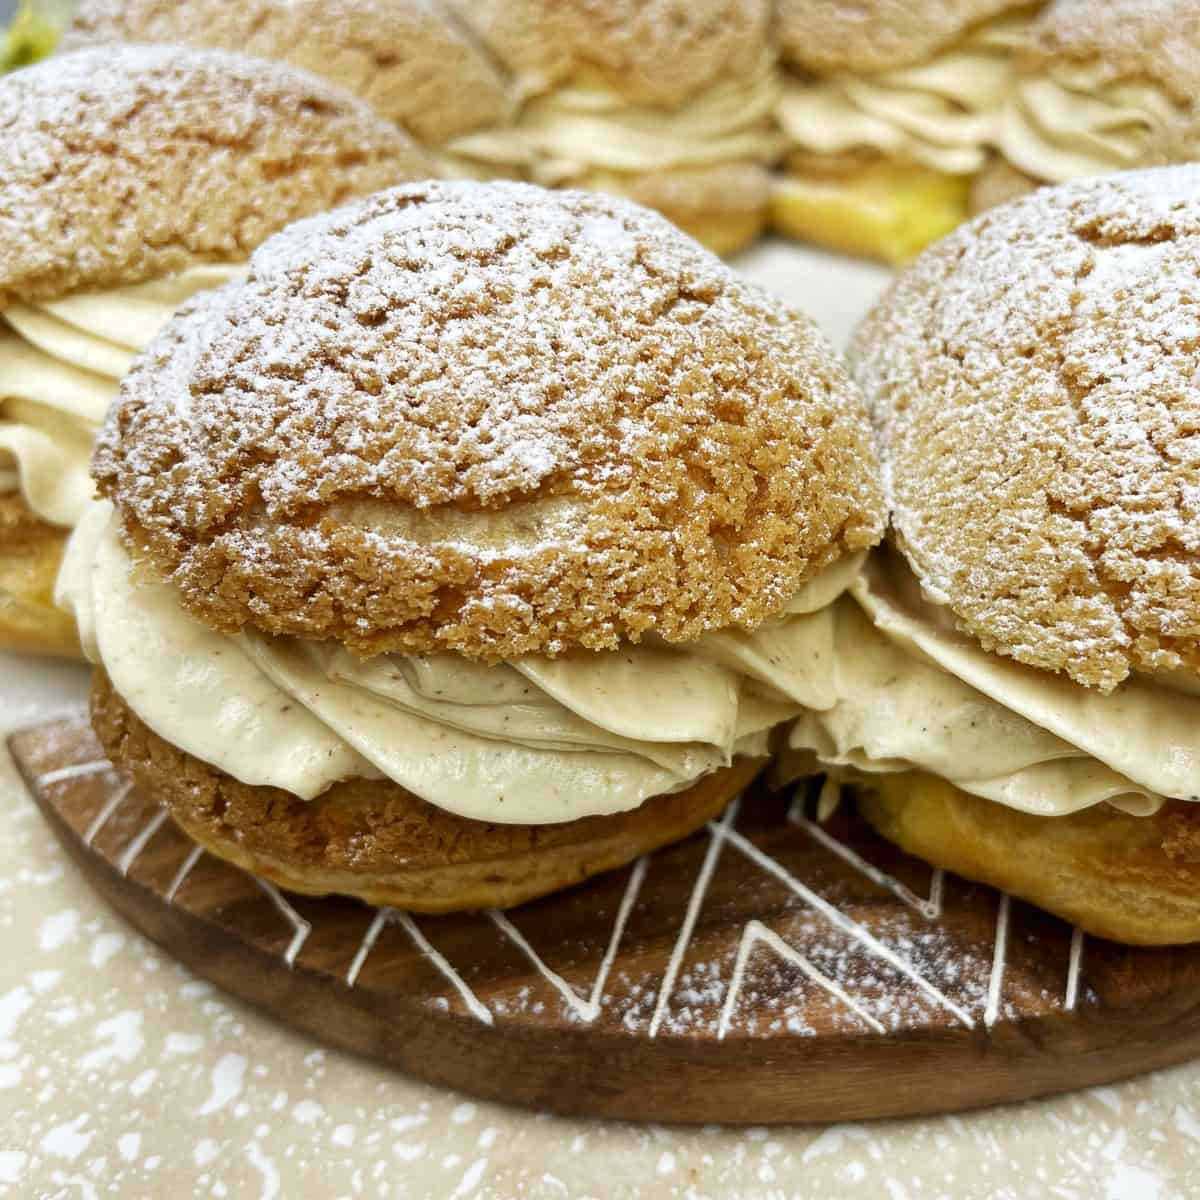 Assembled Paris-Brest dessert on a wooden and marble board